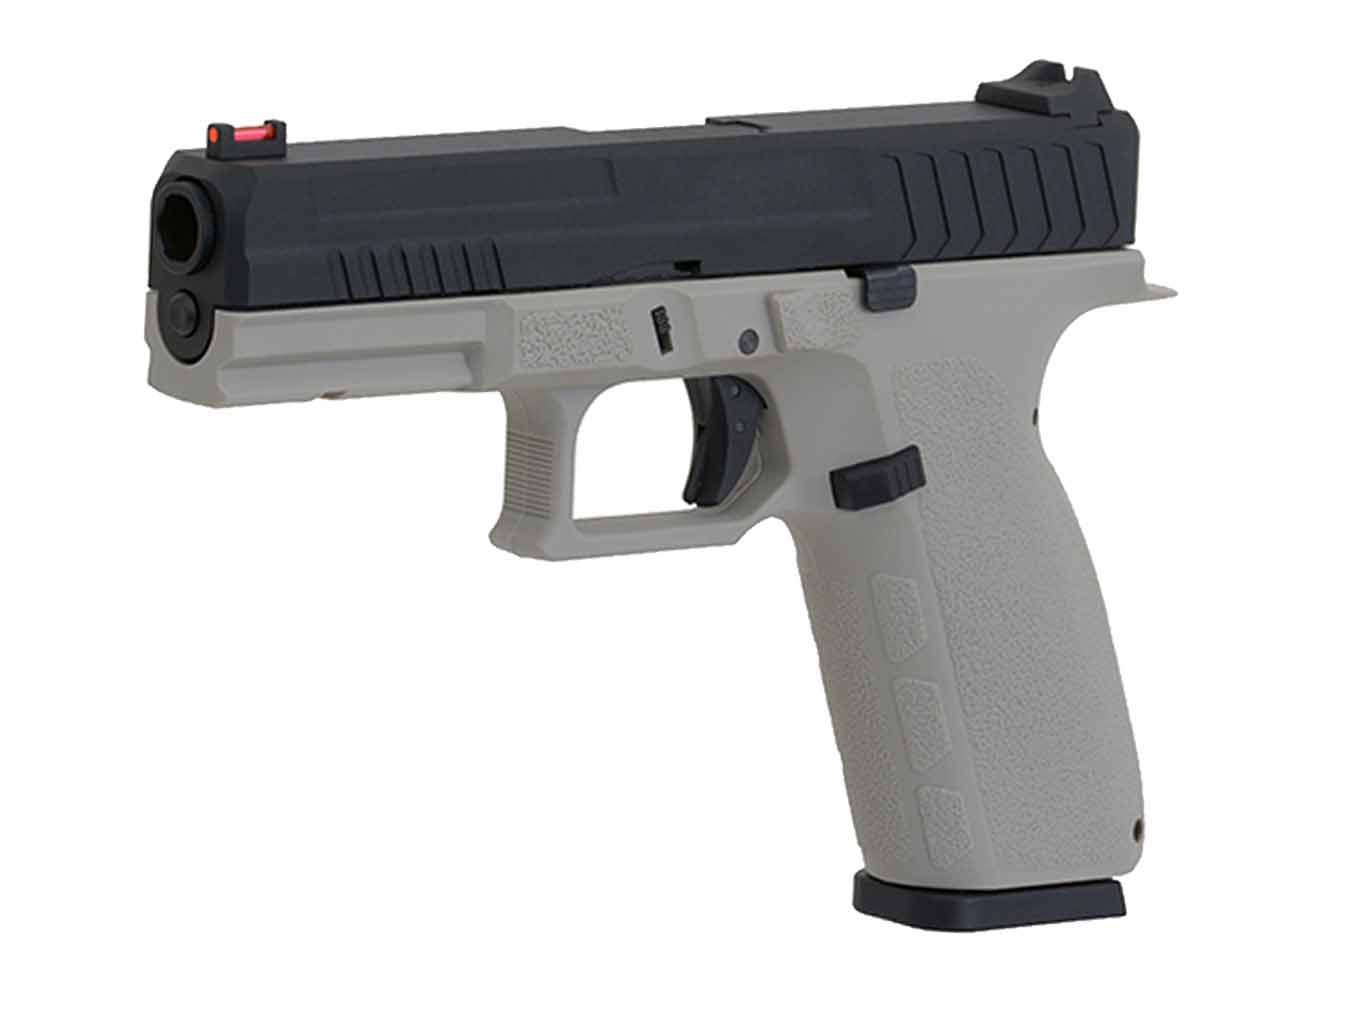 KJW KP-13 Full Size Polymer Frame Gas Blowback Pistol Grey